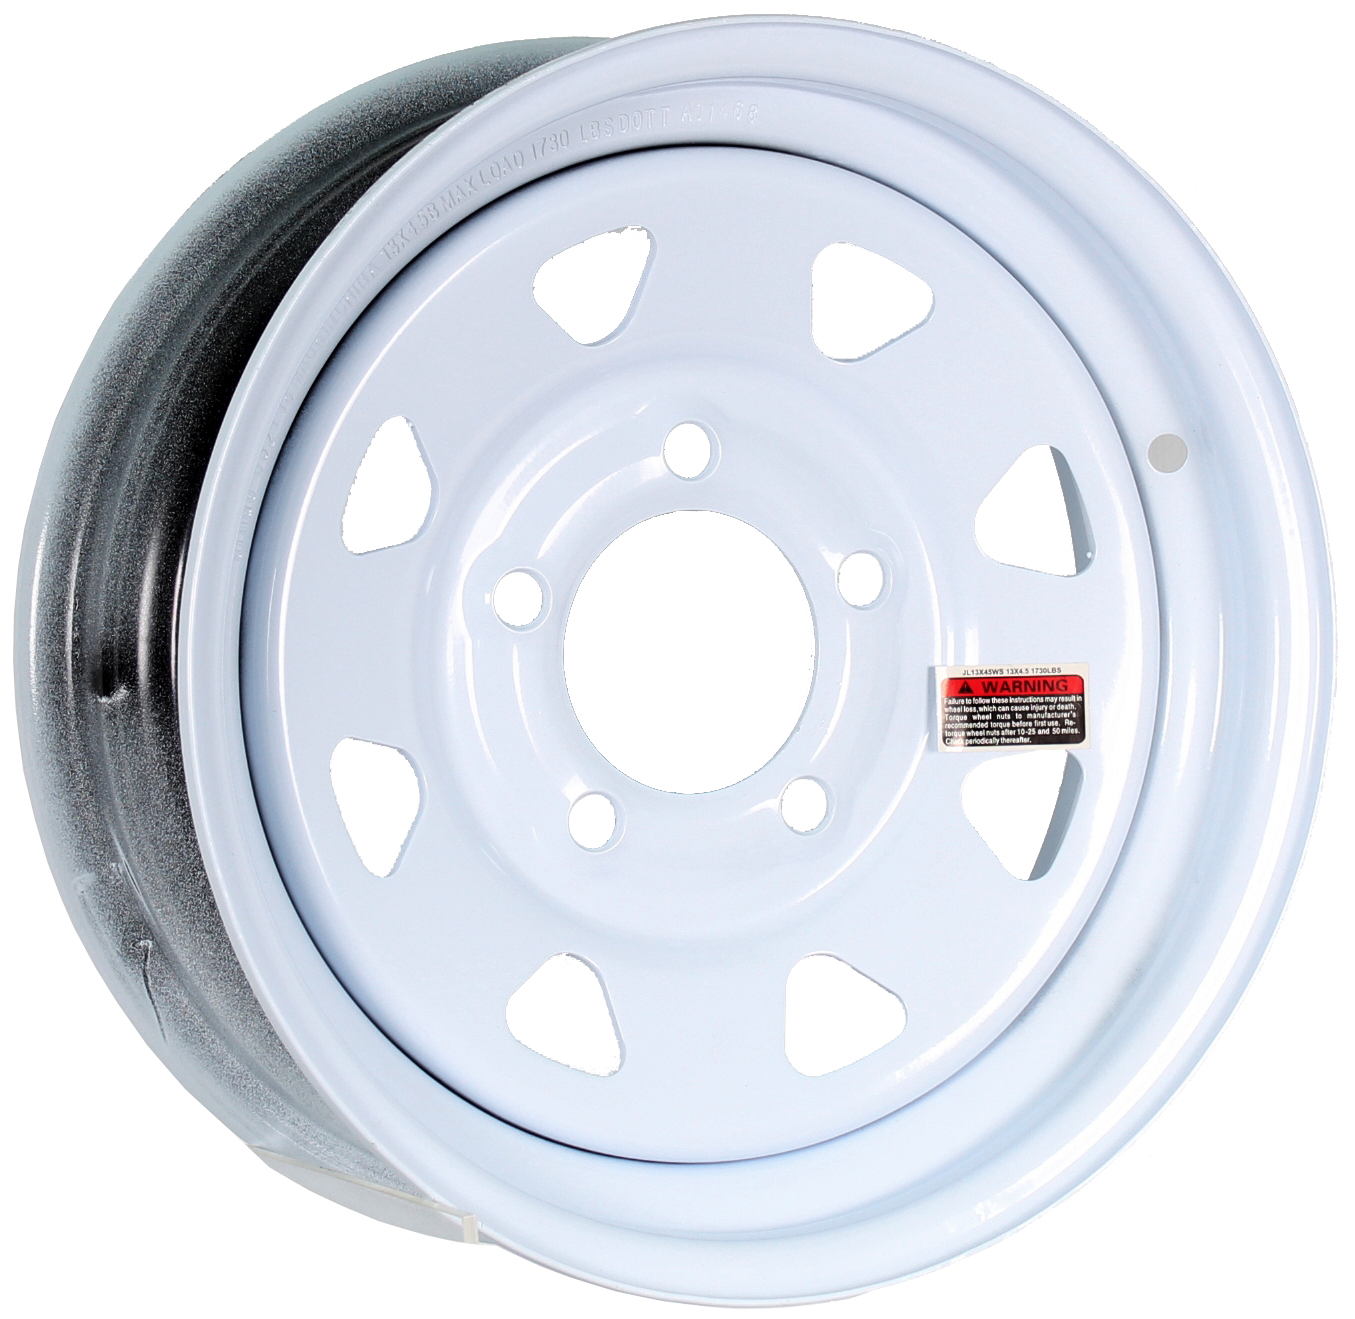 13x4.5 5-4.5 White Spoke Steel Trailer Wheel Image